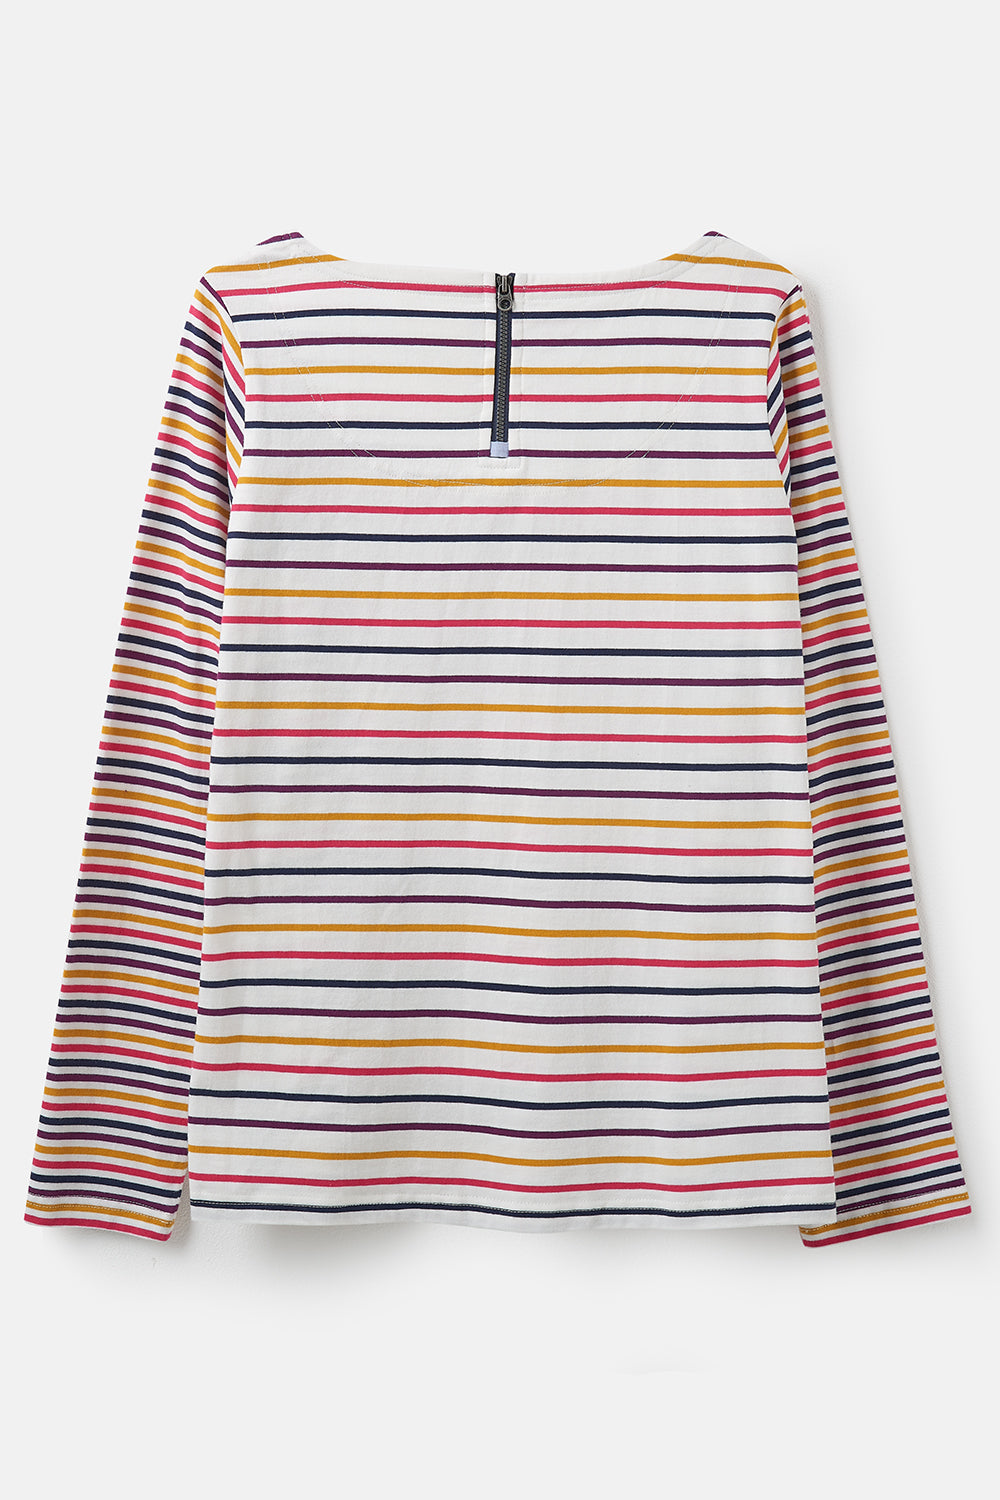 Lighthouse Causeway  - Womens Long Sleeve Top - Pink Yellow Stripe